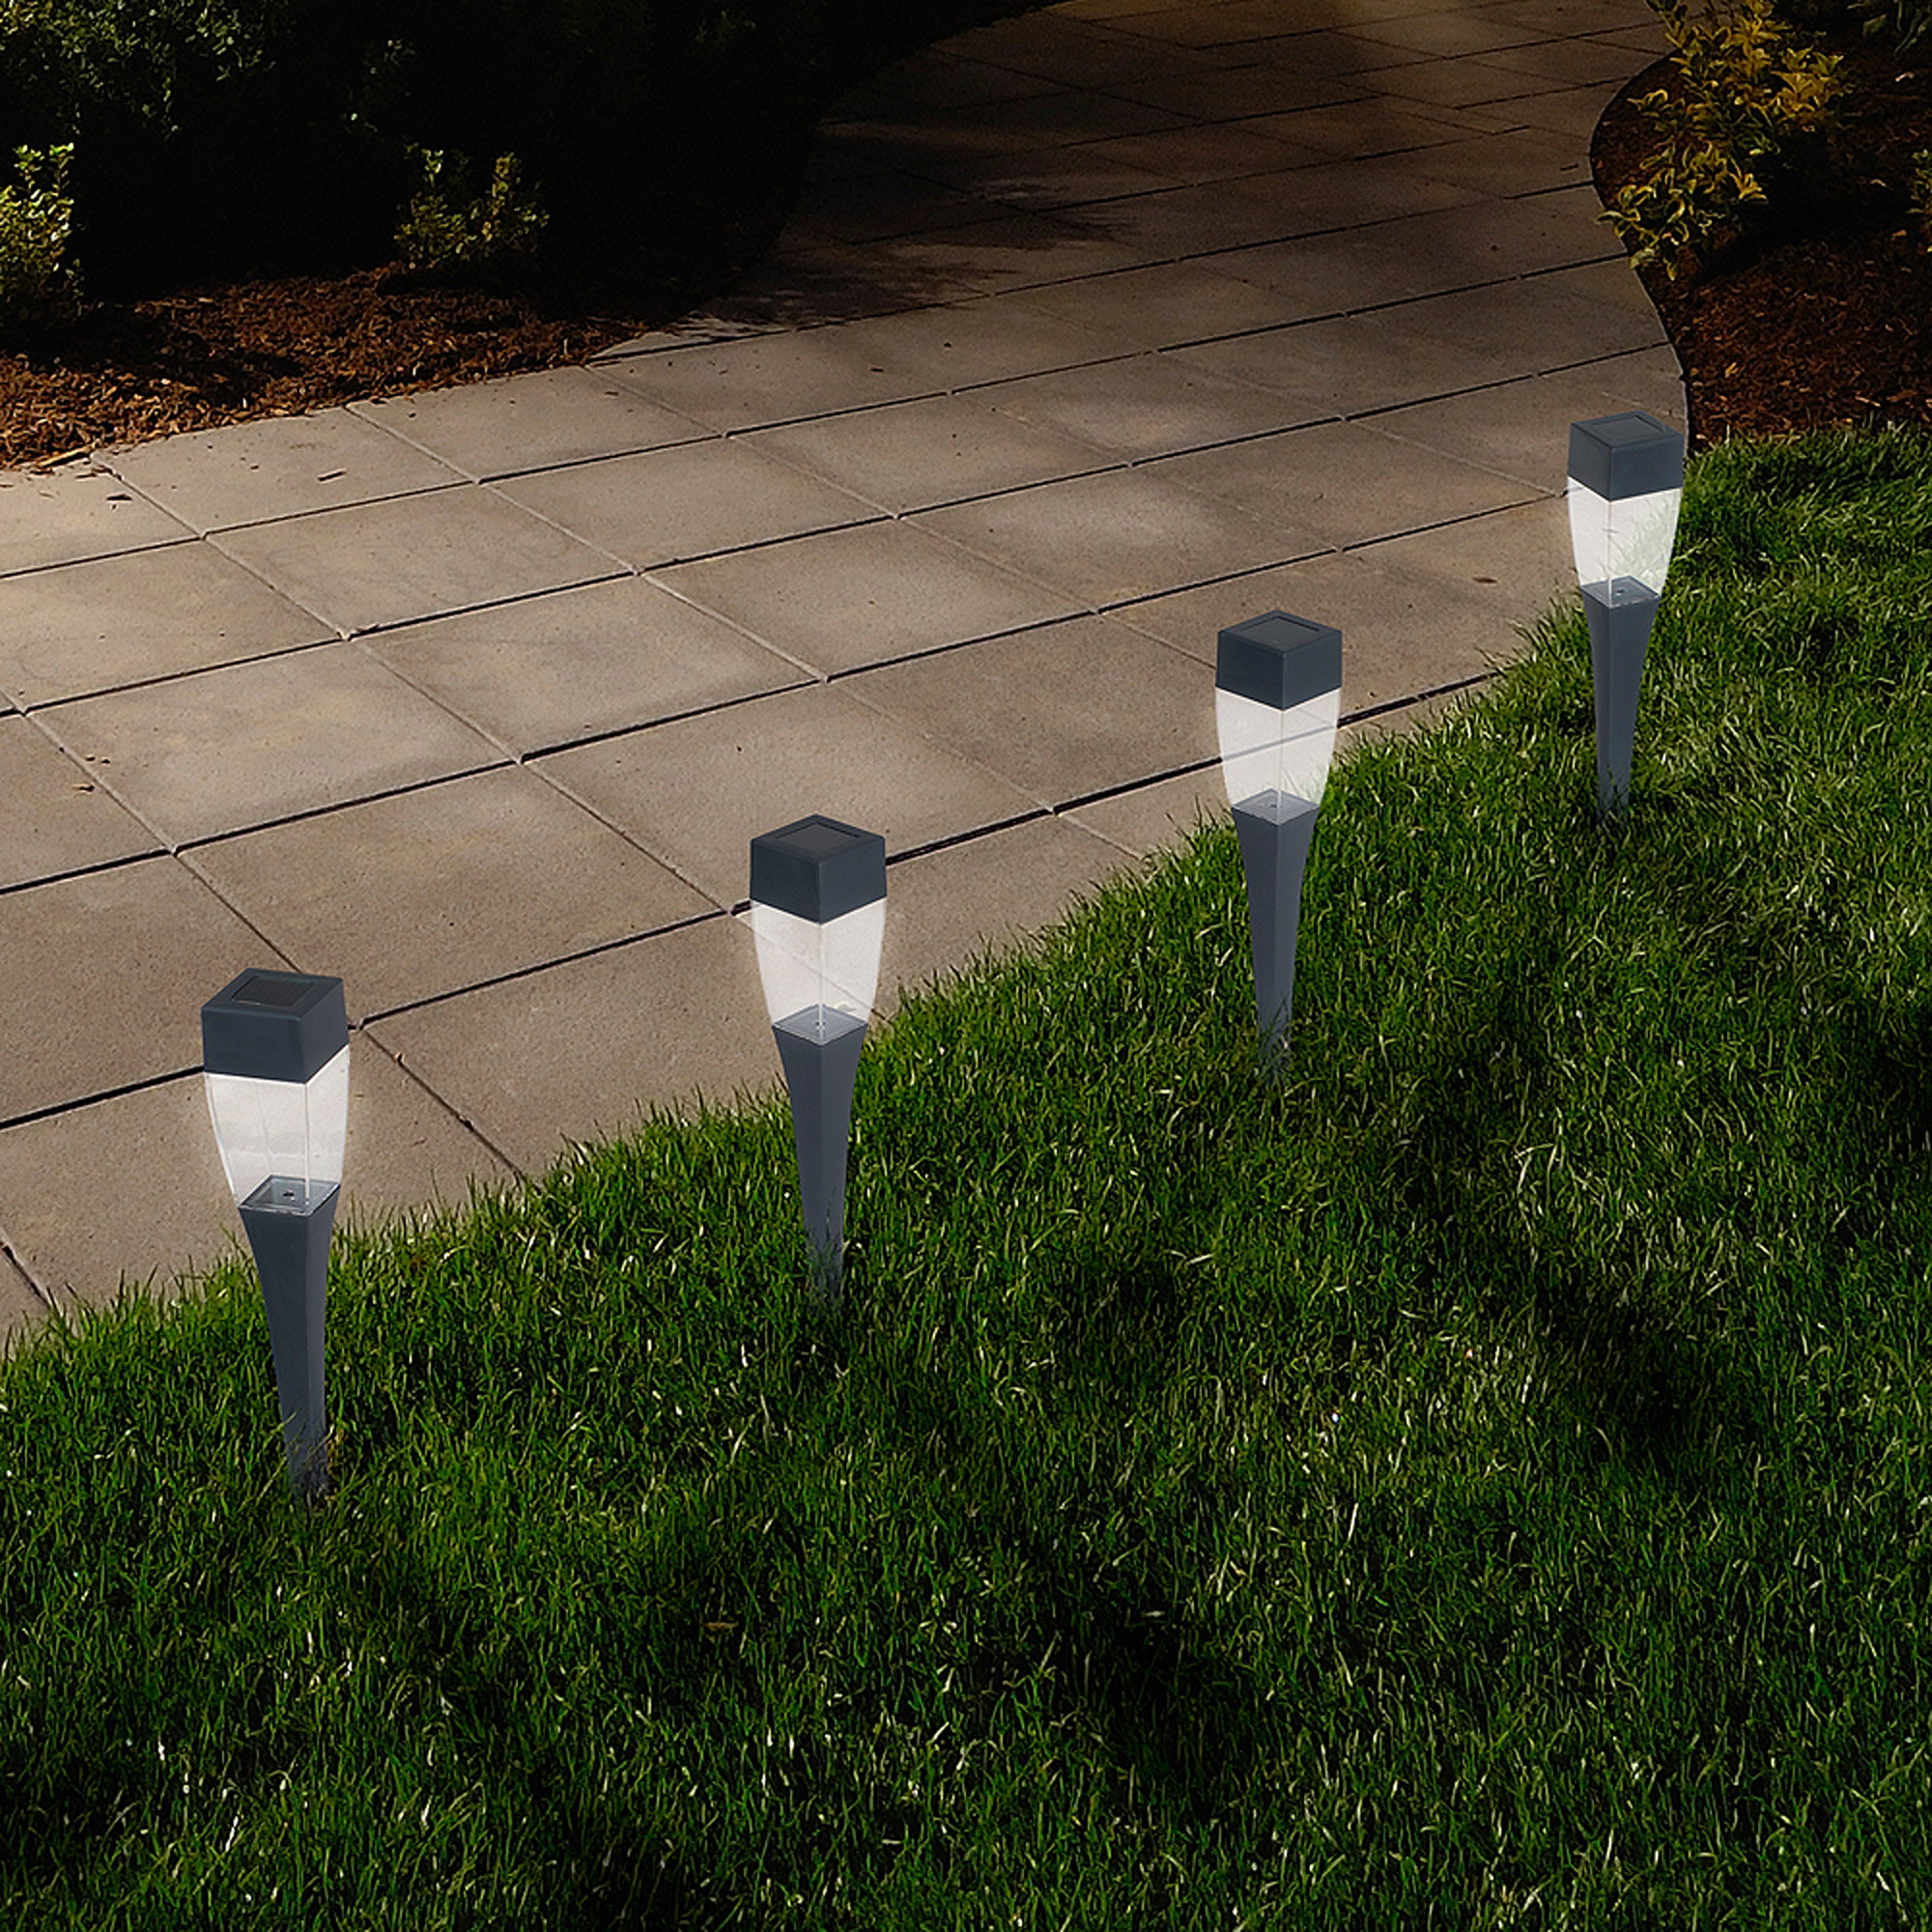 Pure Garden LED Solar Modern Pathway Lights, Set of 24